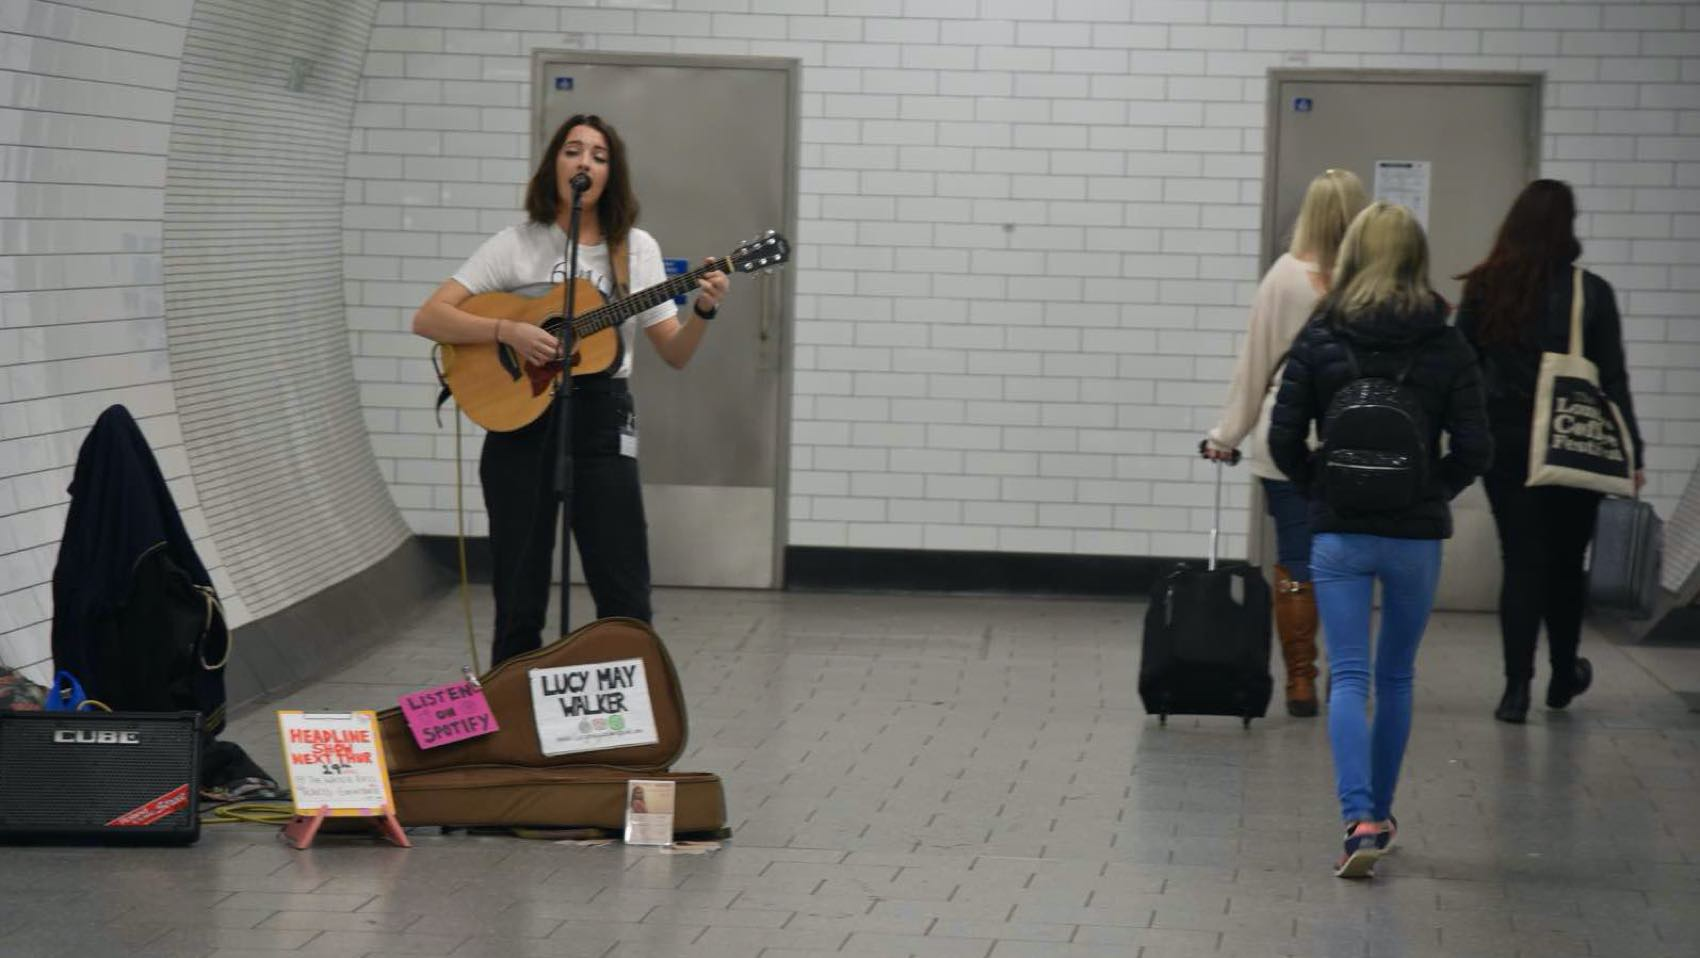 Lucy May Walker is a busker in action. The term busking is about license to sing. Often you'll need a busking permit from the local council to perform at a tube station in London.